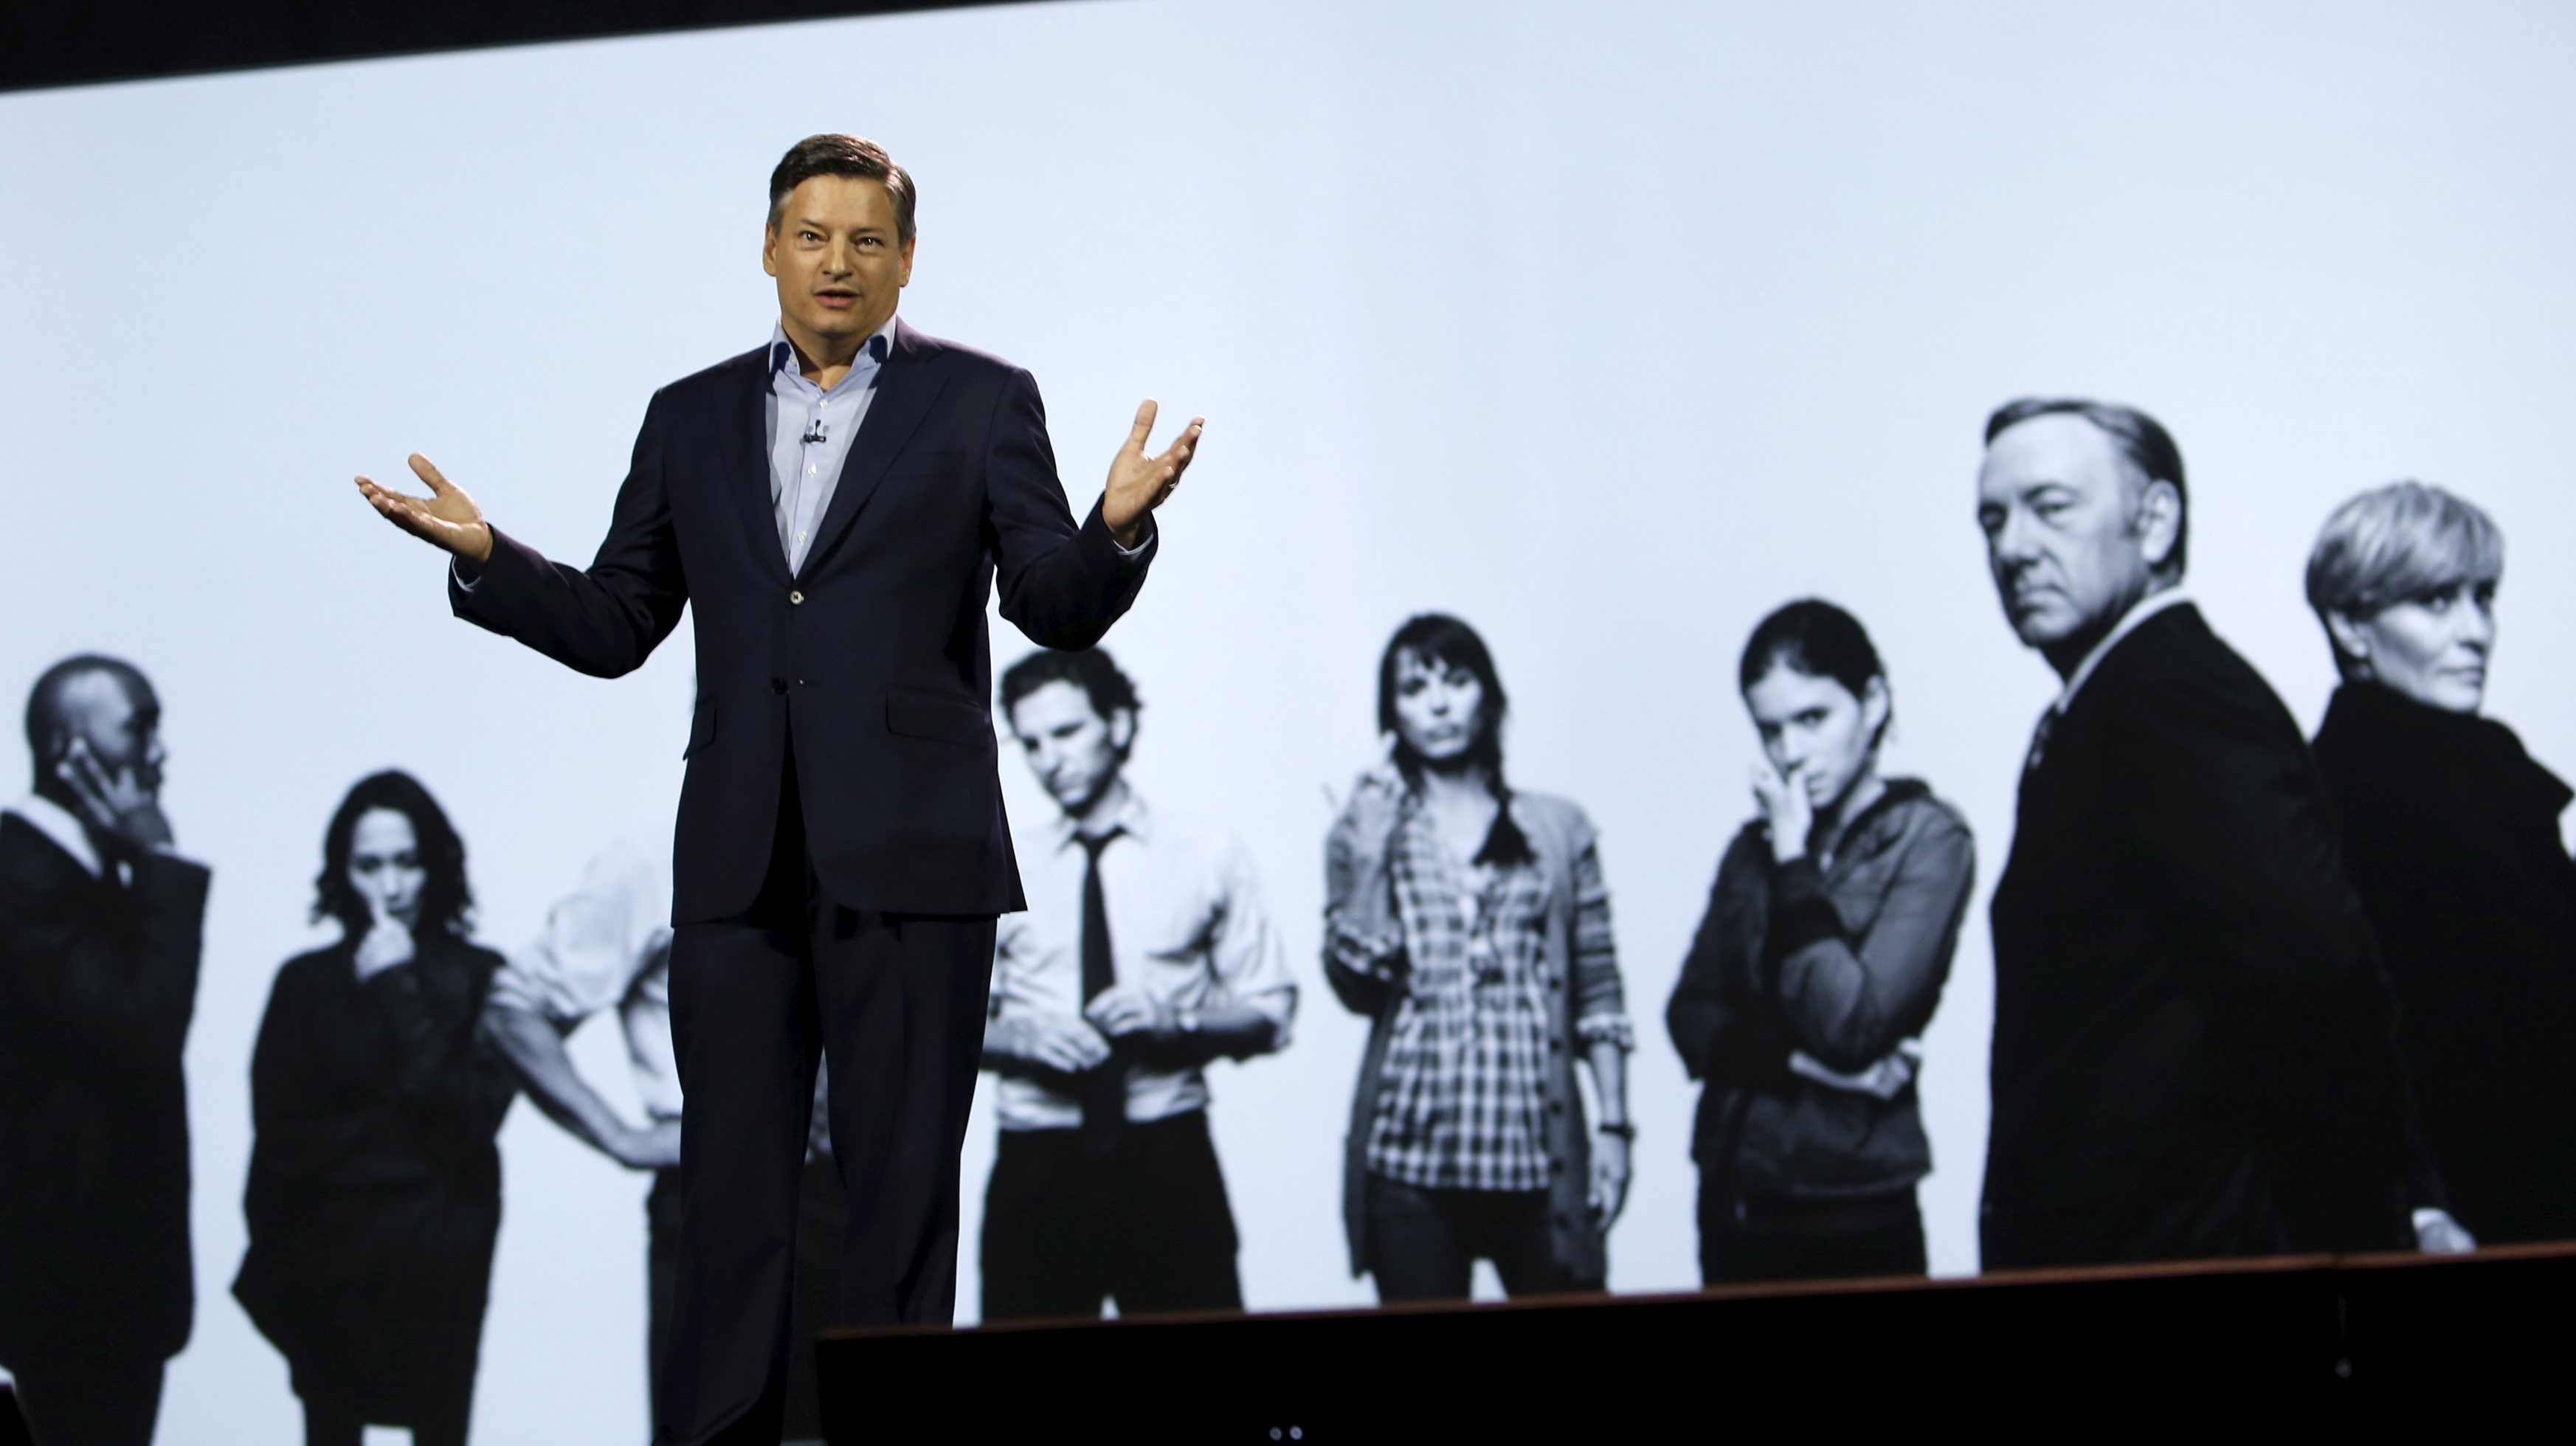 Ted Sarandos, chief content officer for Netflix, speaks during a keynote address at the 2016 CES trade show in Las Vegas, Nevada January 6, 2016.  REUTERS/Steve Marcus - RTX21BOK